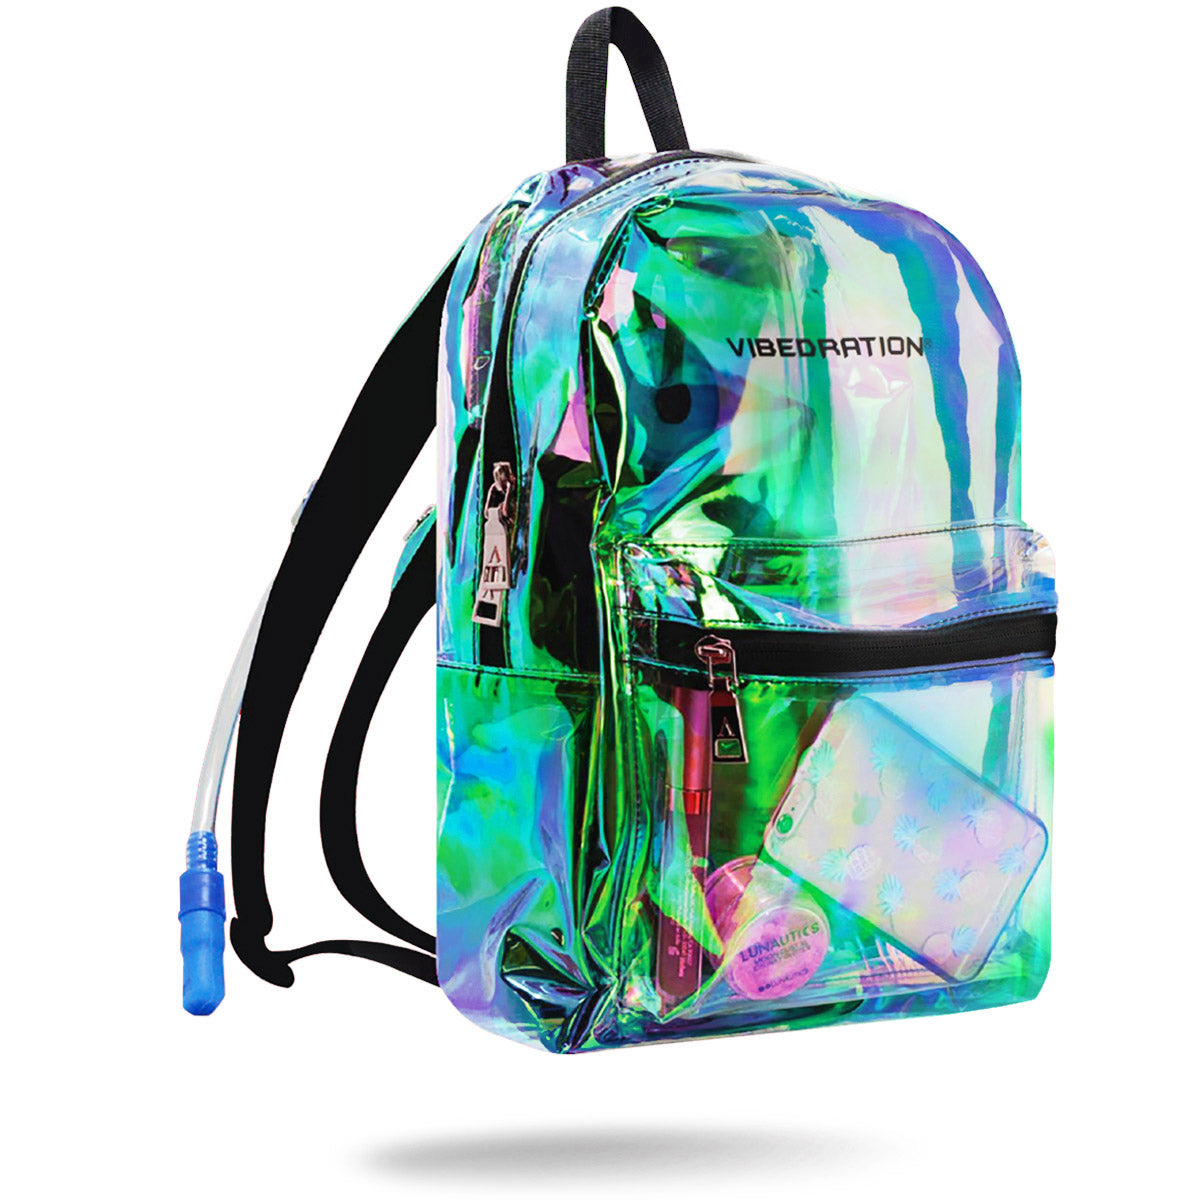 4e49714d88 Vibedration 1.5 Liter Holographic Backpack - Approved for Rave ...